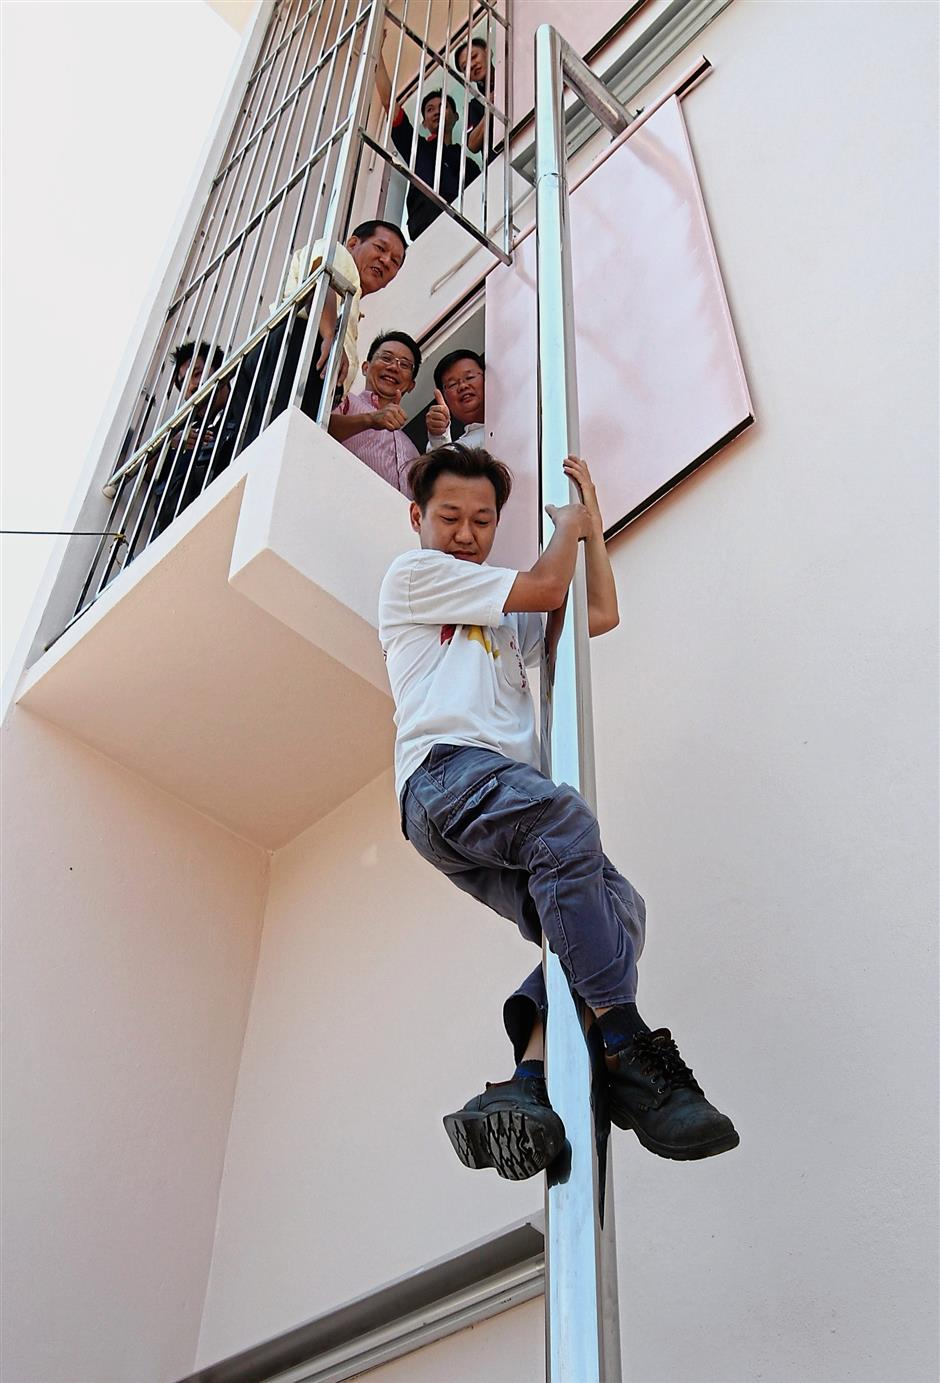 (From left) Hock Keong, Alex and Chow Kon Yeow watching a firemen demonstrate how to slide down the pole at the newly completed fire station at Weld Quay. — Photos: CHIN CHENG YEANG/The Star